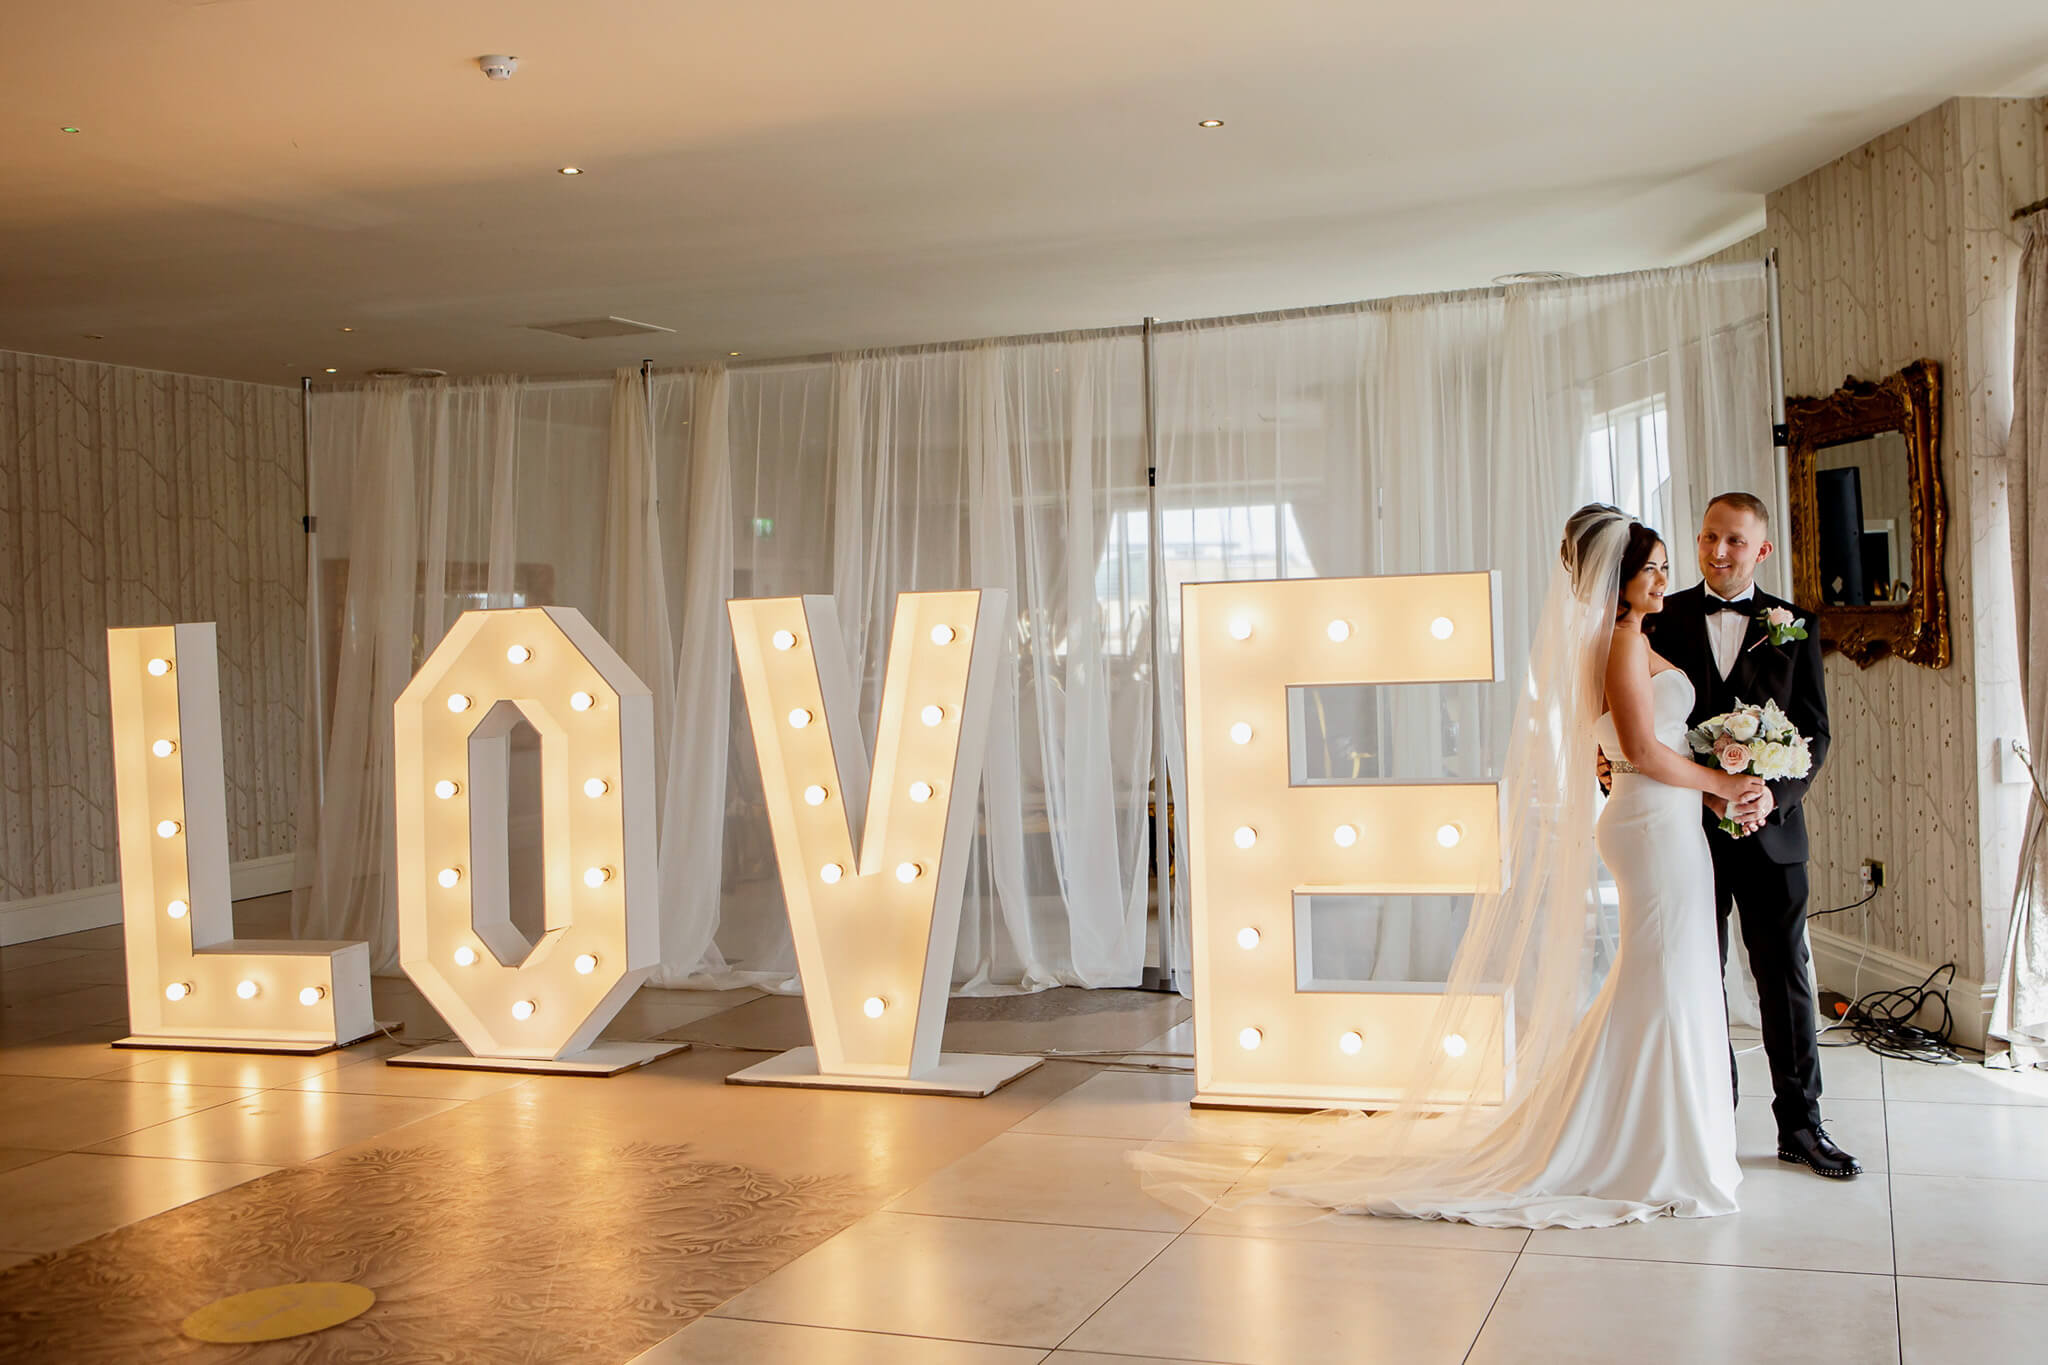 shankly-hotel-wedding-photographer-liverpool-stanbury-photography-020